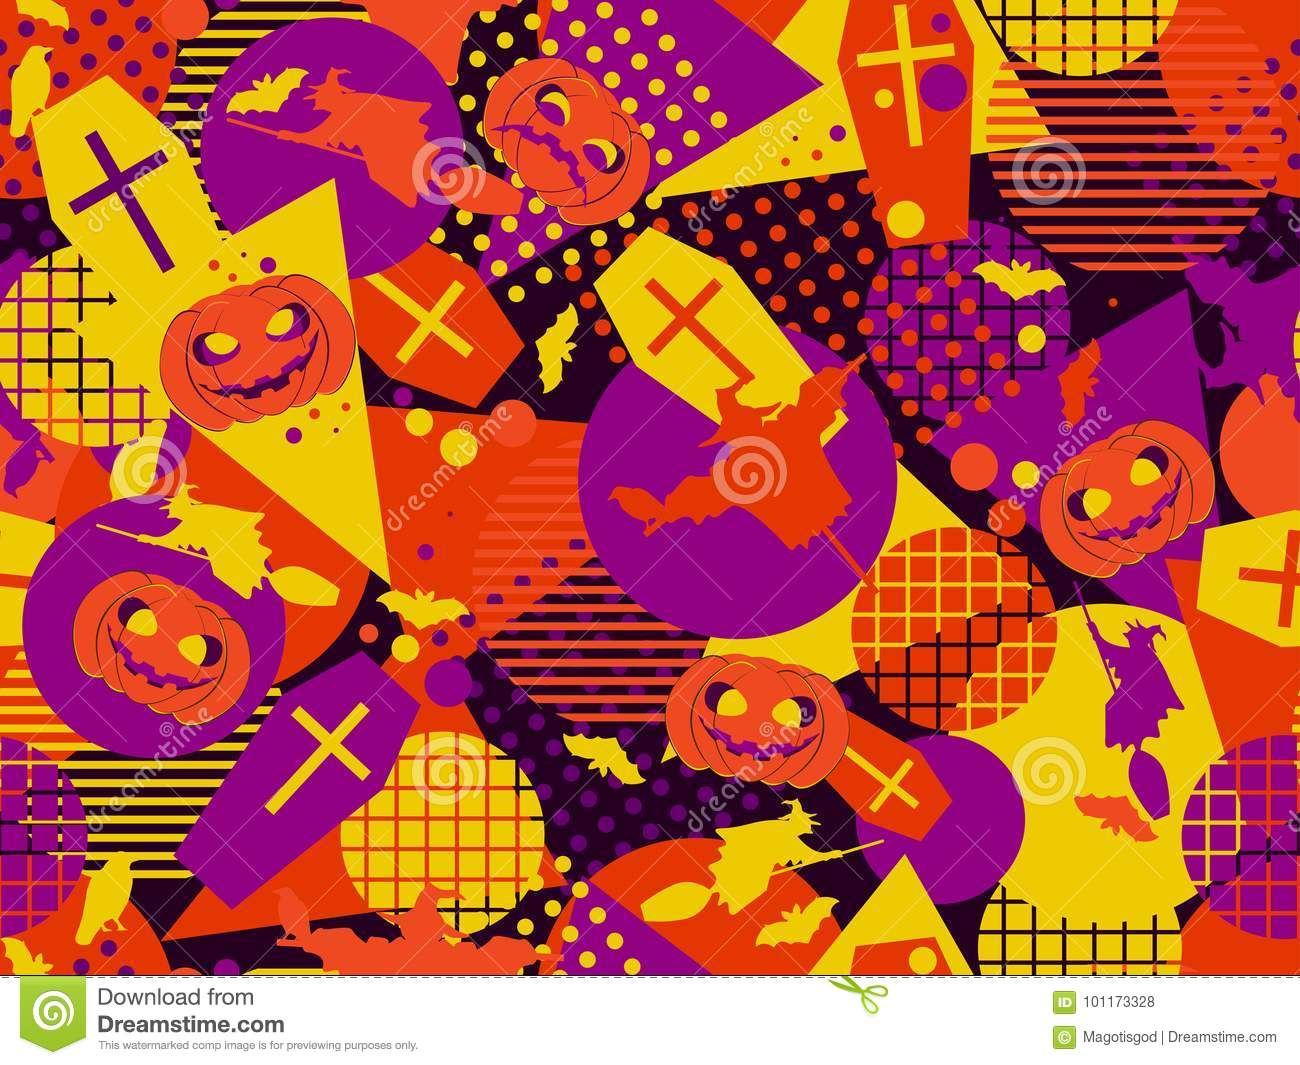 download halloween memphis seamless pattern festive background with mystical creatures and geometric figures a memphis